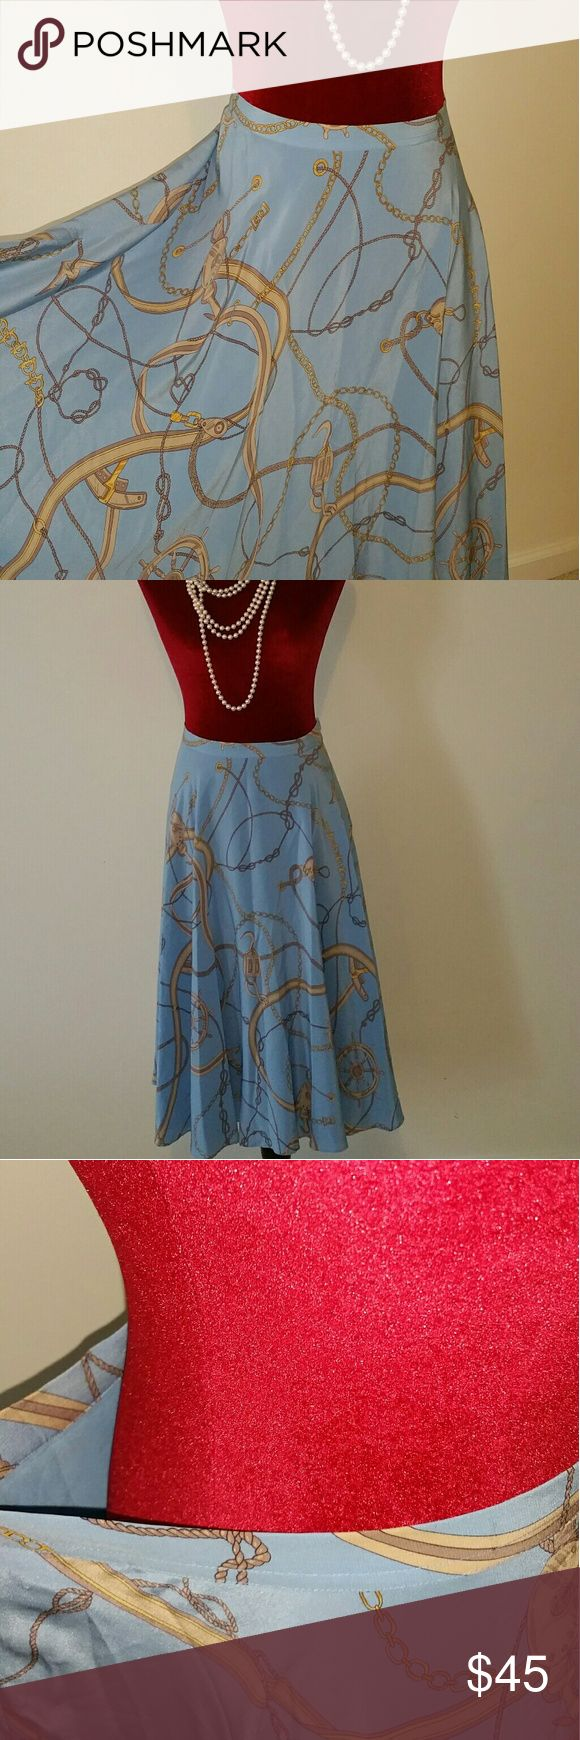 👗NAUTICA 100% SILK SKIRT Size 8👗 👗Gorgeous Aqua Blue 100% Silk Skirt. Size 8. Lining is 100% Polyester. Dry Clean Only. Clean. Waist is 15.5 inches. Length is 27 inches.Pre-Loved. Colors: Aqua Blue. Cream. Gold. Decoration is chain links with hooks. Tiny hole near zipper (see photo). 👗Please view all photos 👗Make an Offer 👗Let's Chat Nautica Skirts